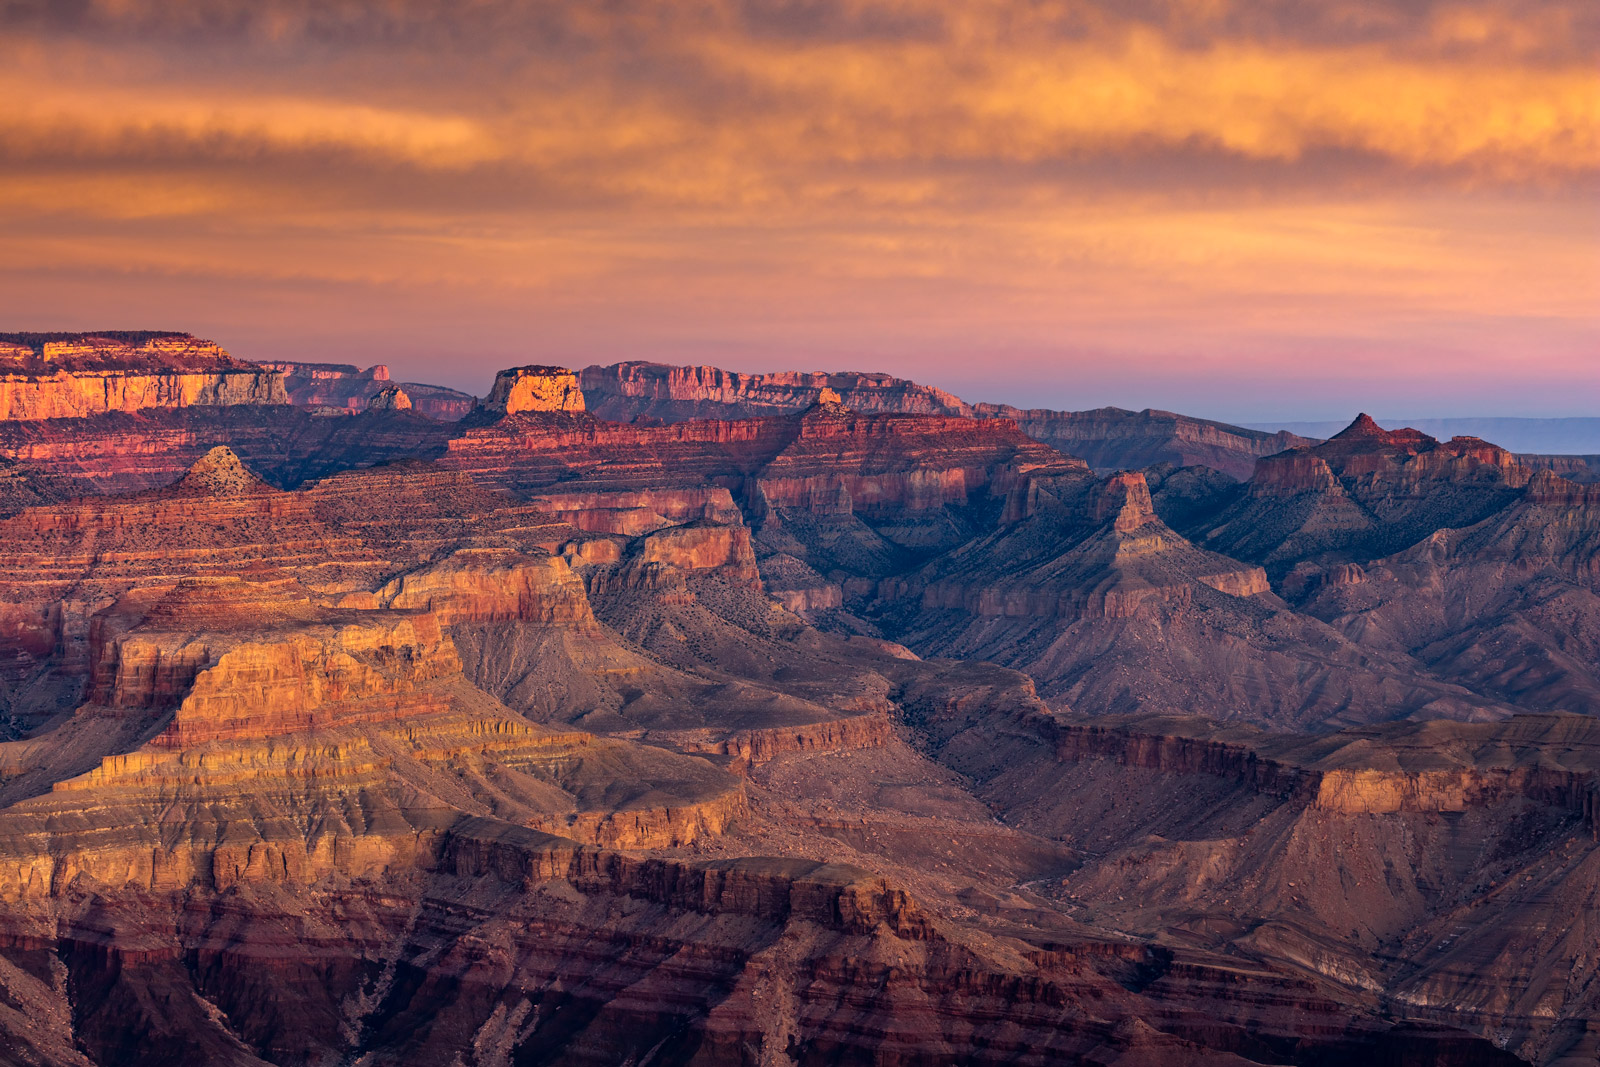 A Limited Edition, Fine Art photograph of a dramatic sunrise lighting up the walls of the canyons in the Grand Canyon National...